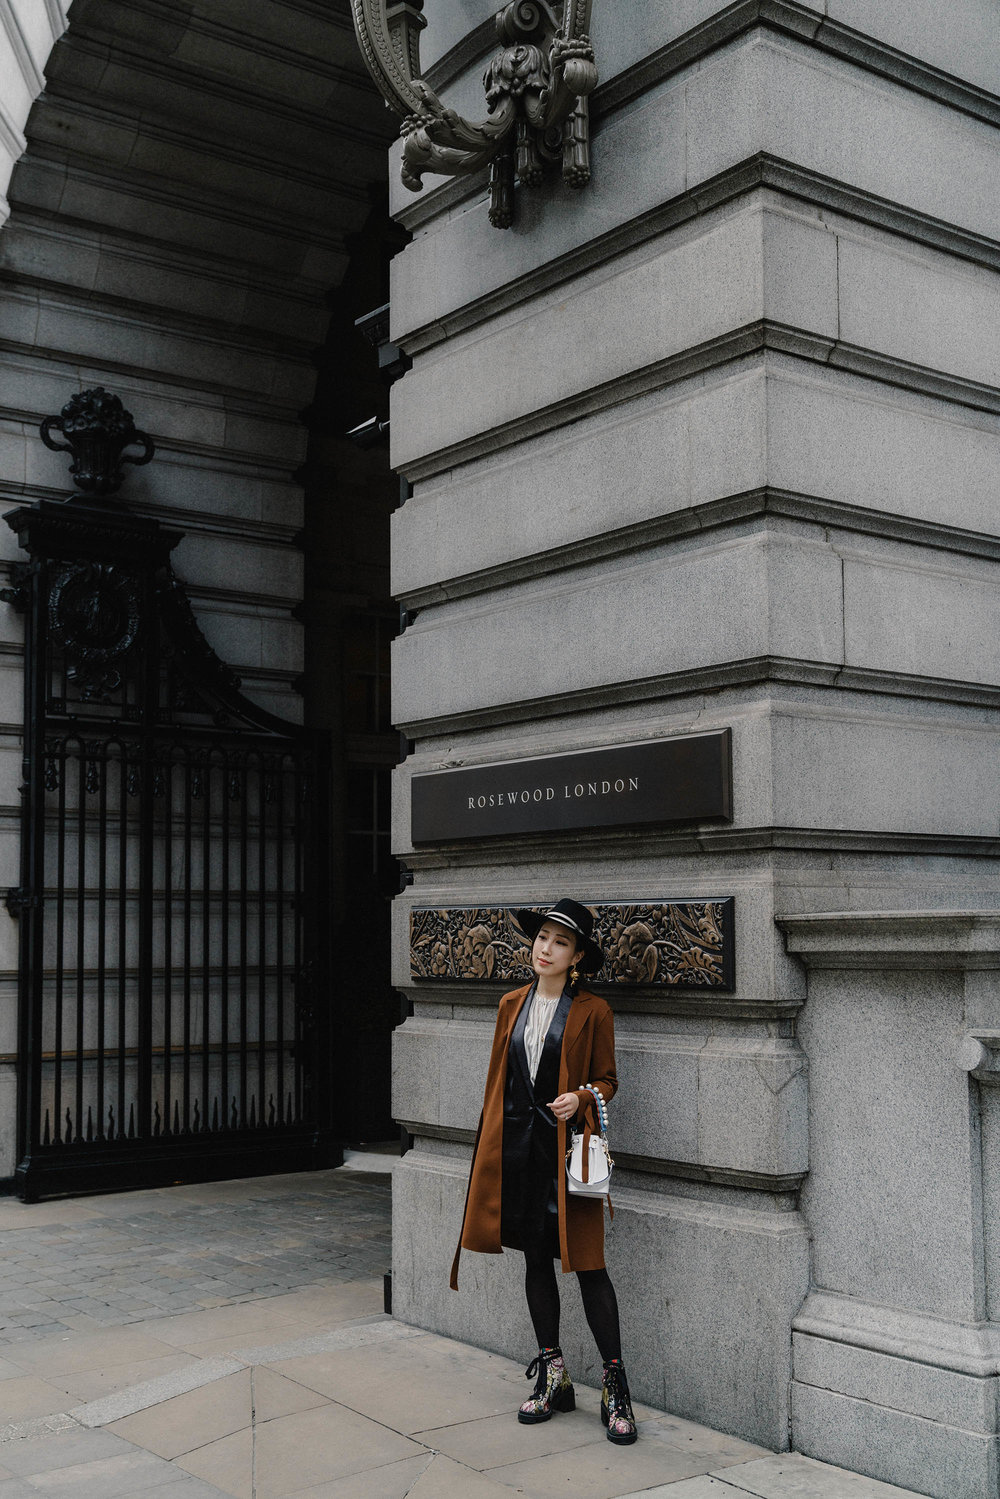 Erica in London for NARS x Erdem